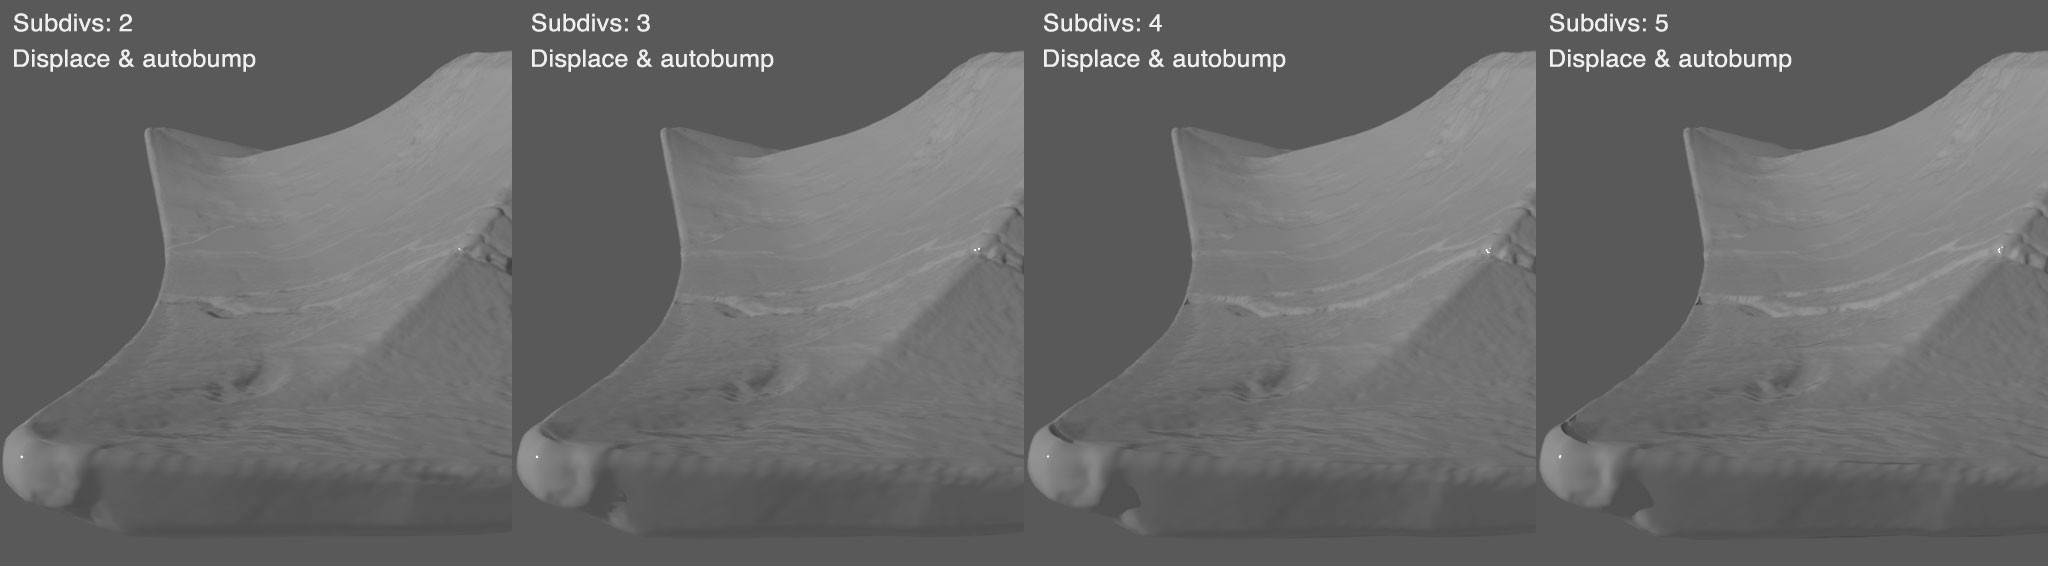 3 subdivisions with autobump seems to be sweet spot. But still not happy with the overall softening & bloating.